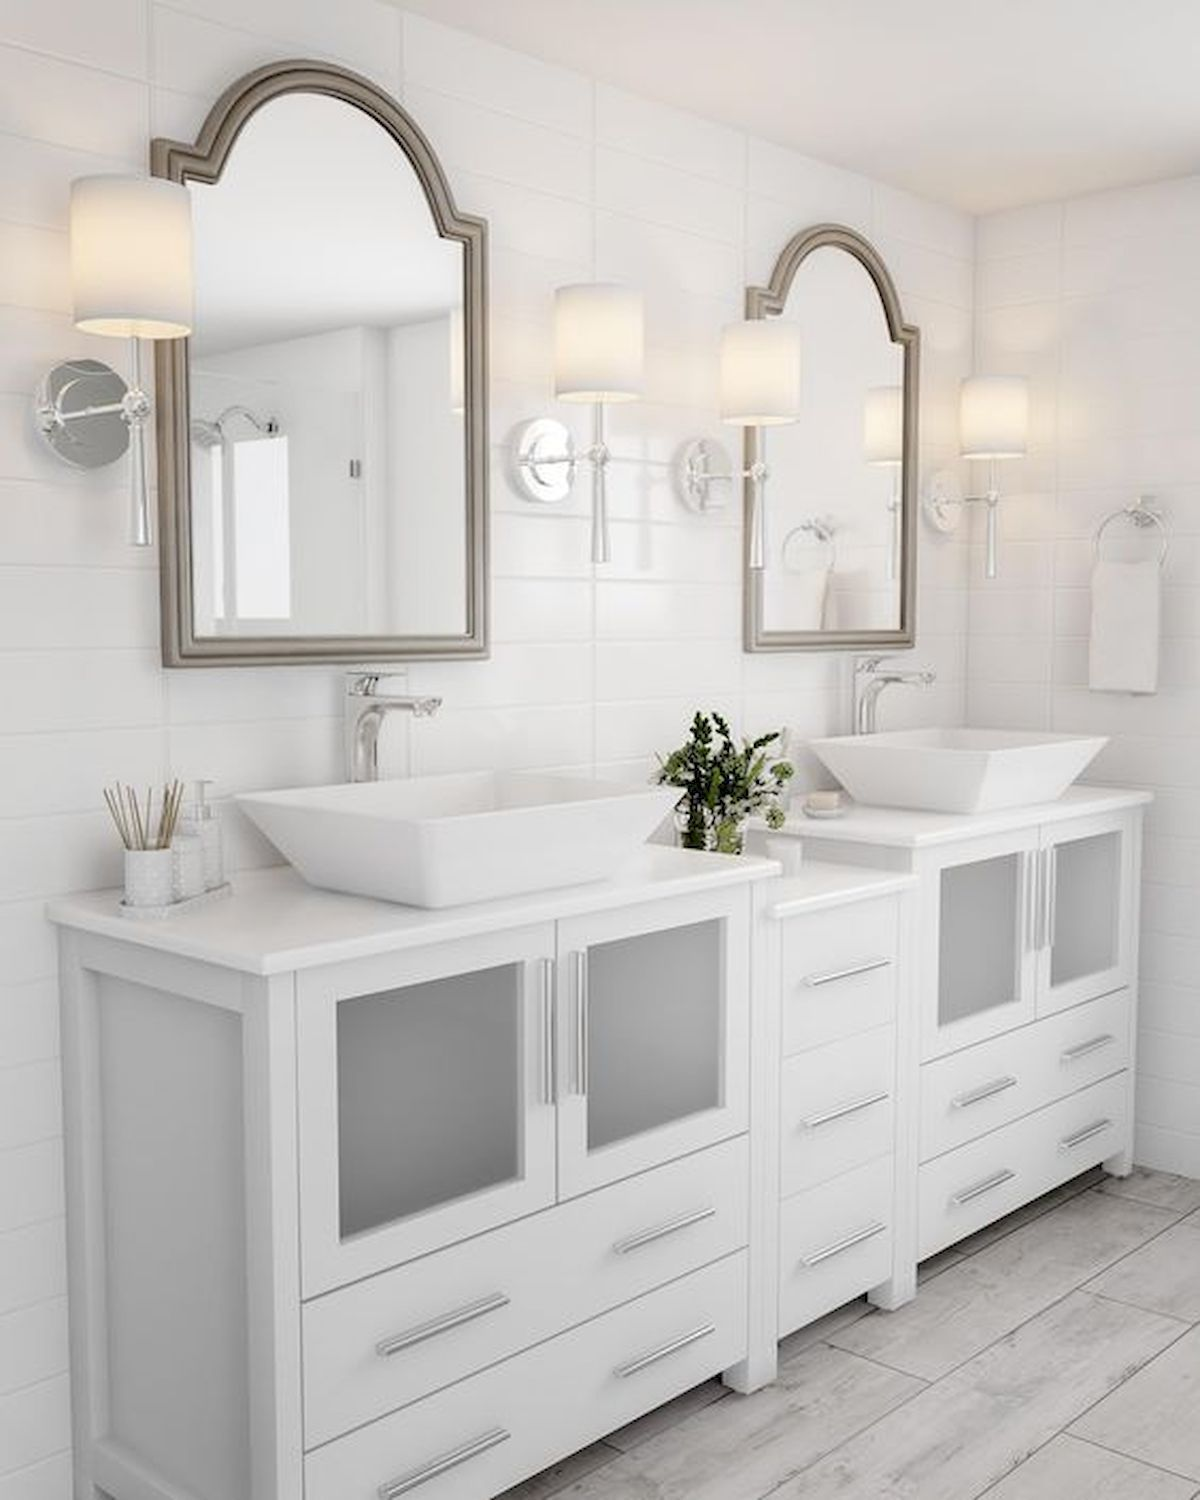 60 Fantastic Farmhouse Bathroom Vanity Decor Ideas And